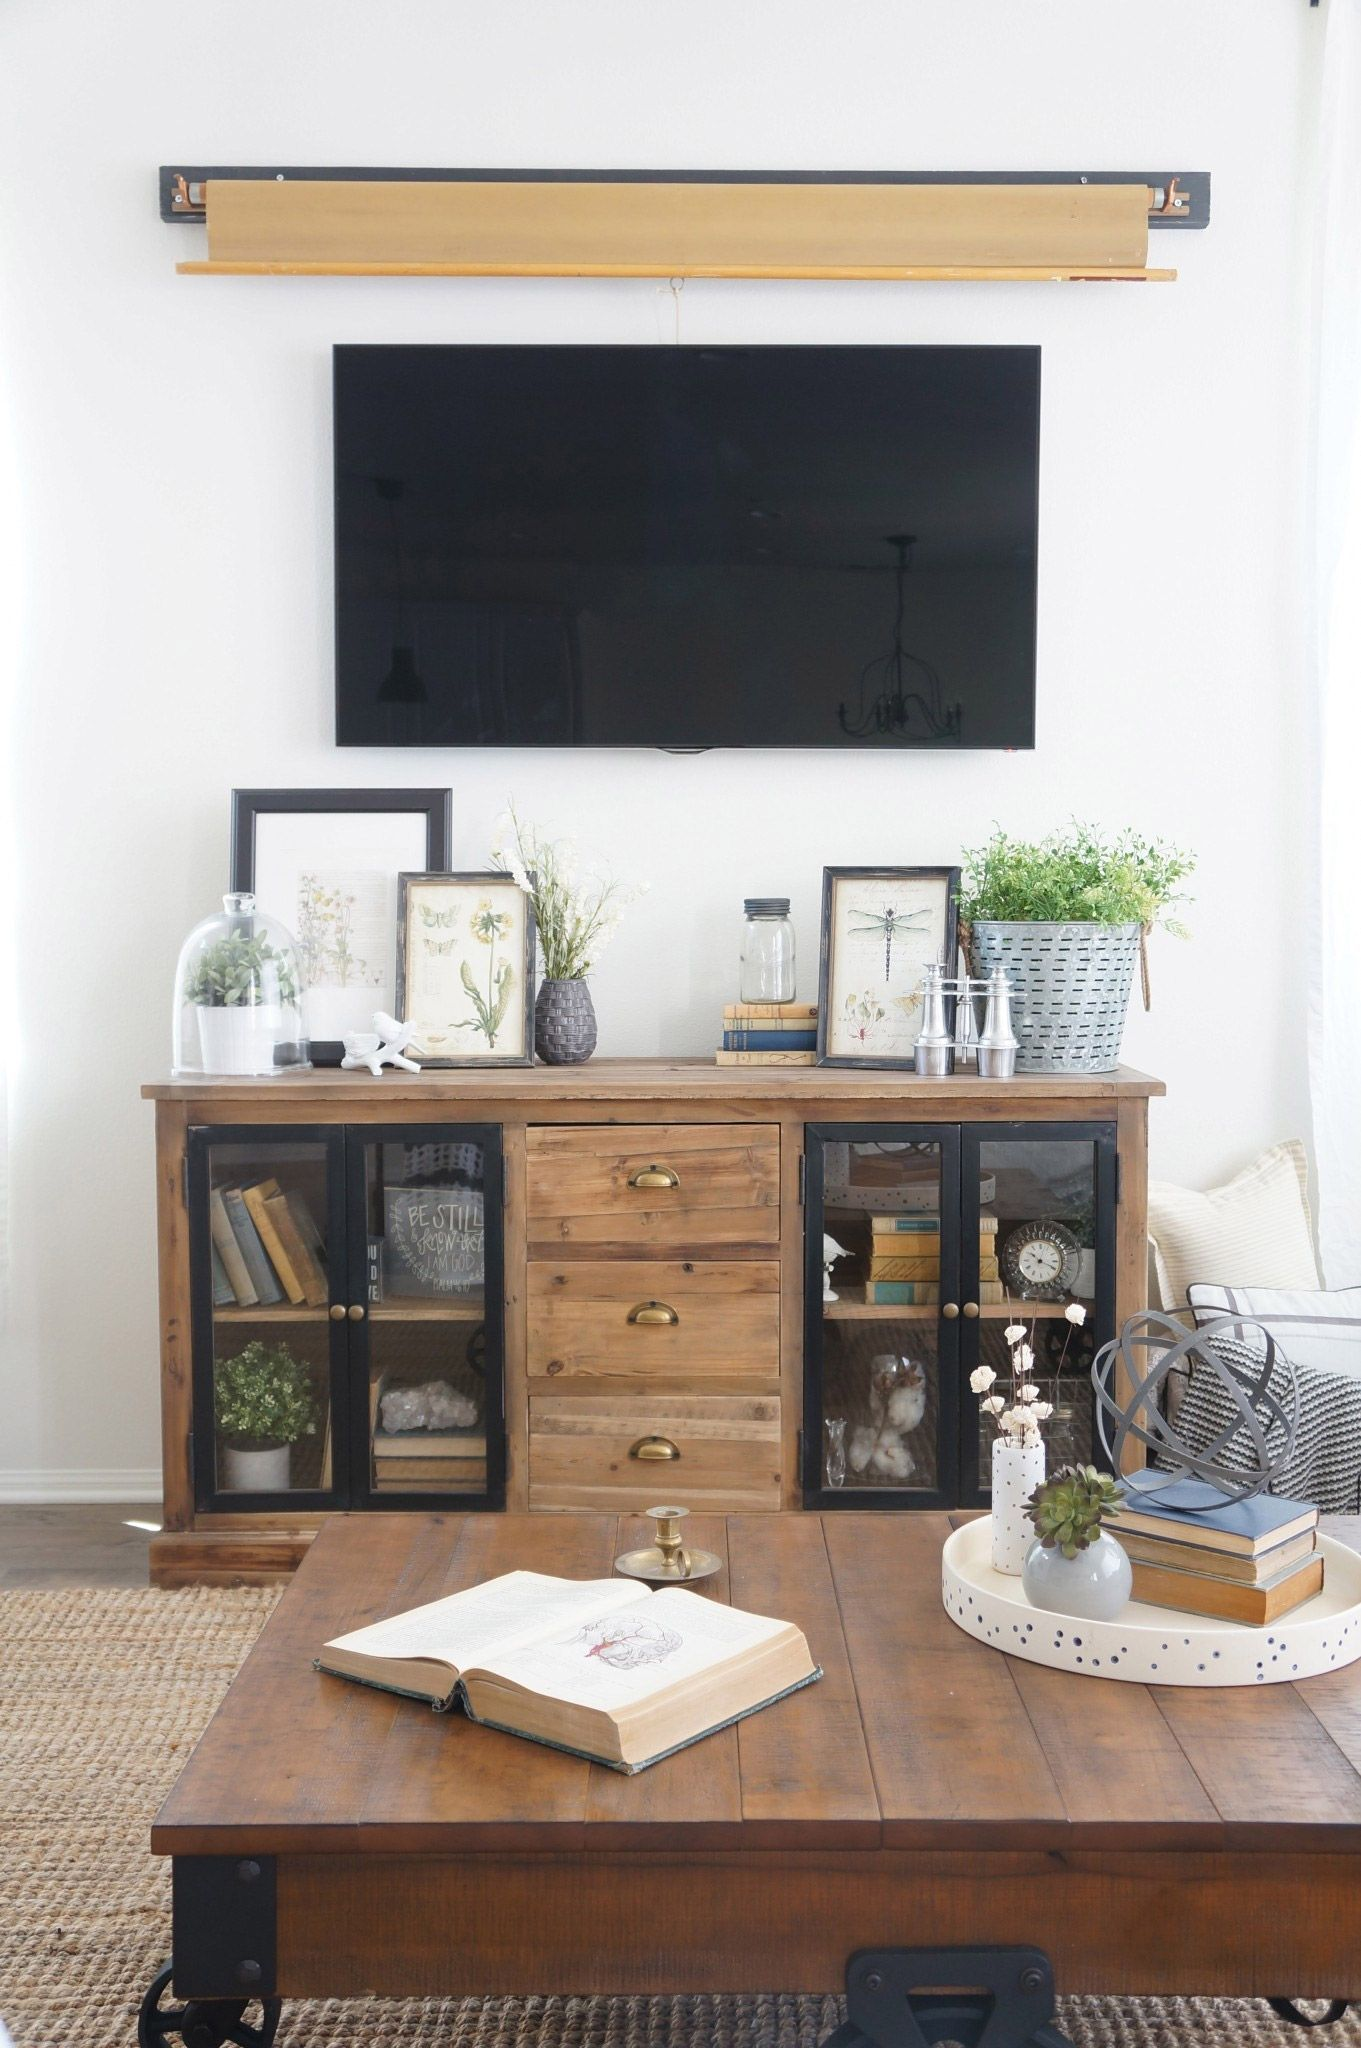 8 Clever And Stylish Ways To Disguise Your Tv Living Roo